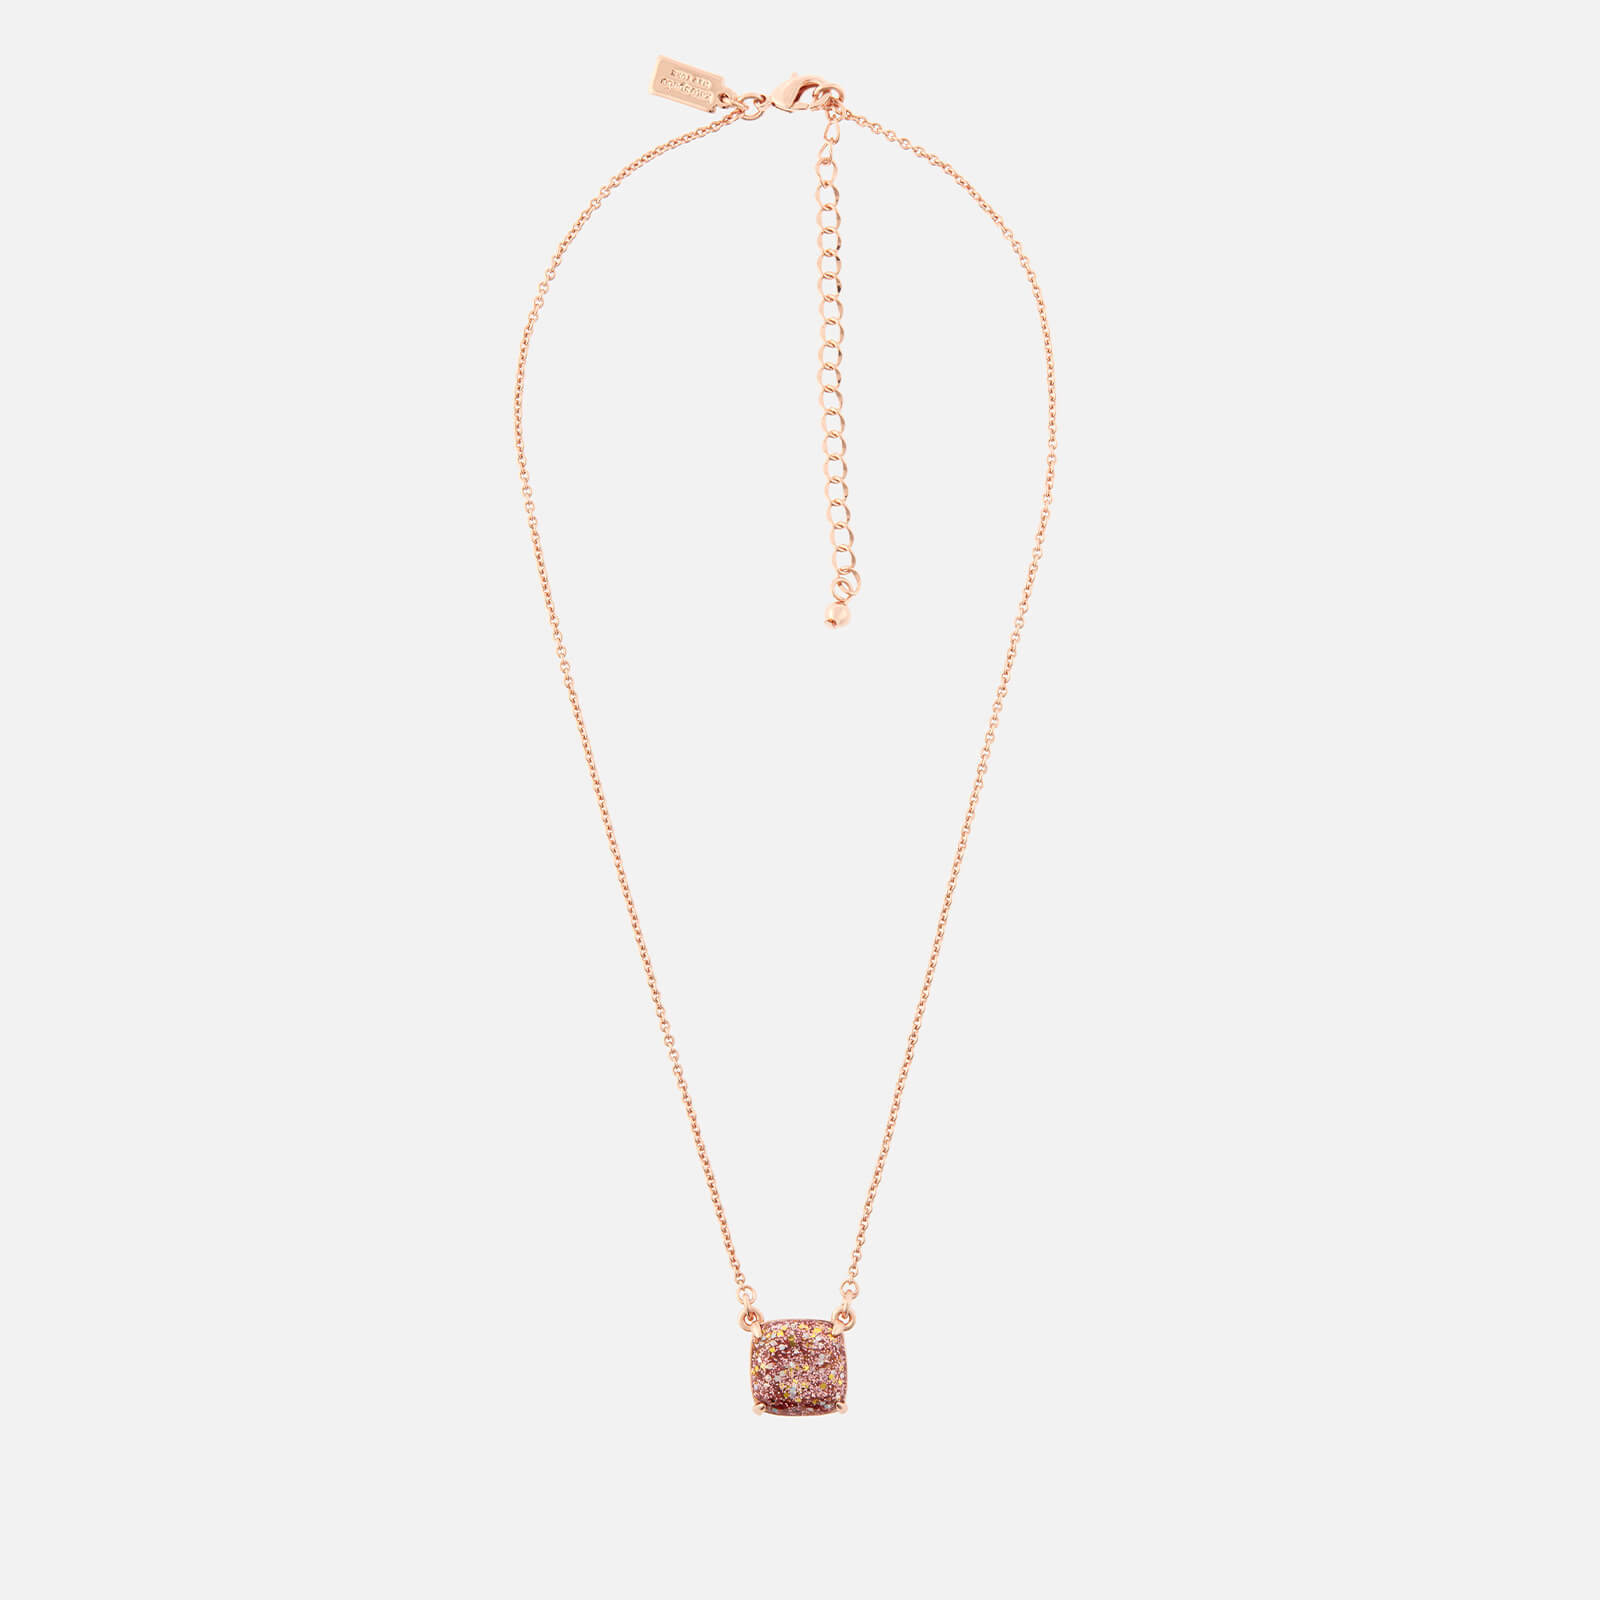 Kate Spade New York Women's Cause A Stir Necklace - Rose Gold